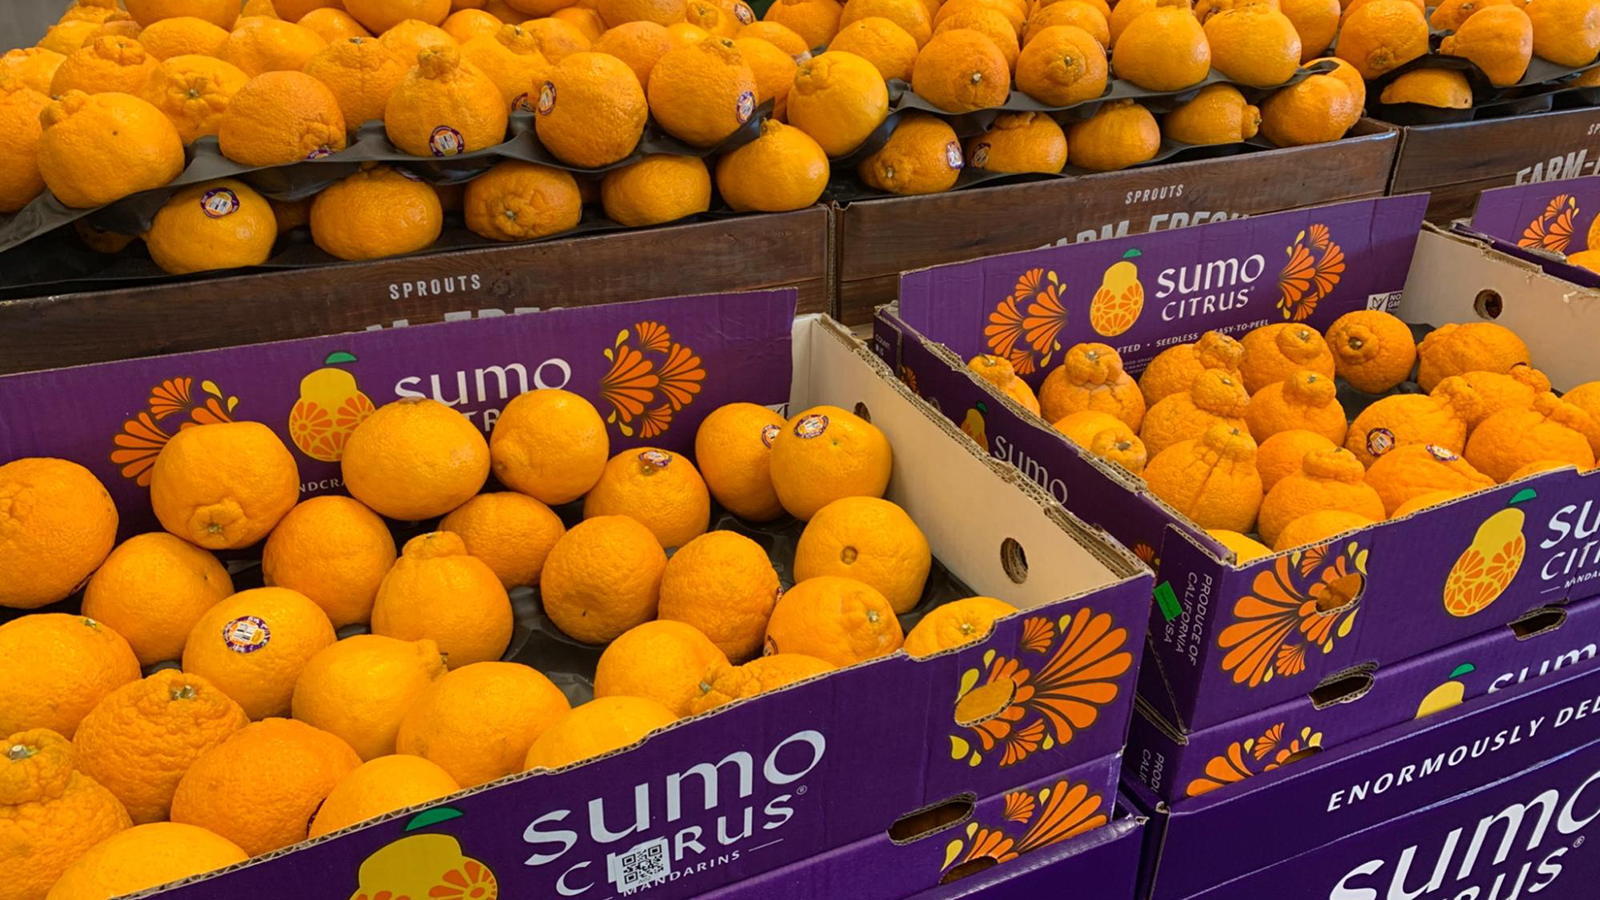 stacked boxes of lovable Sumo oranges